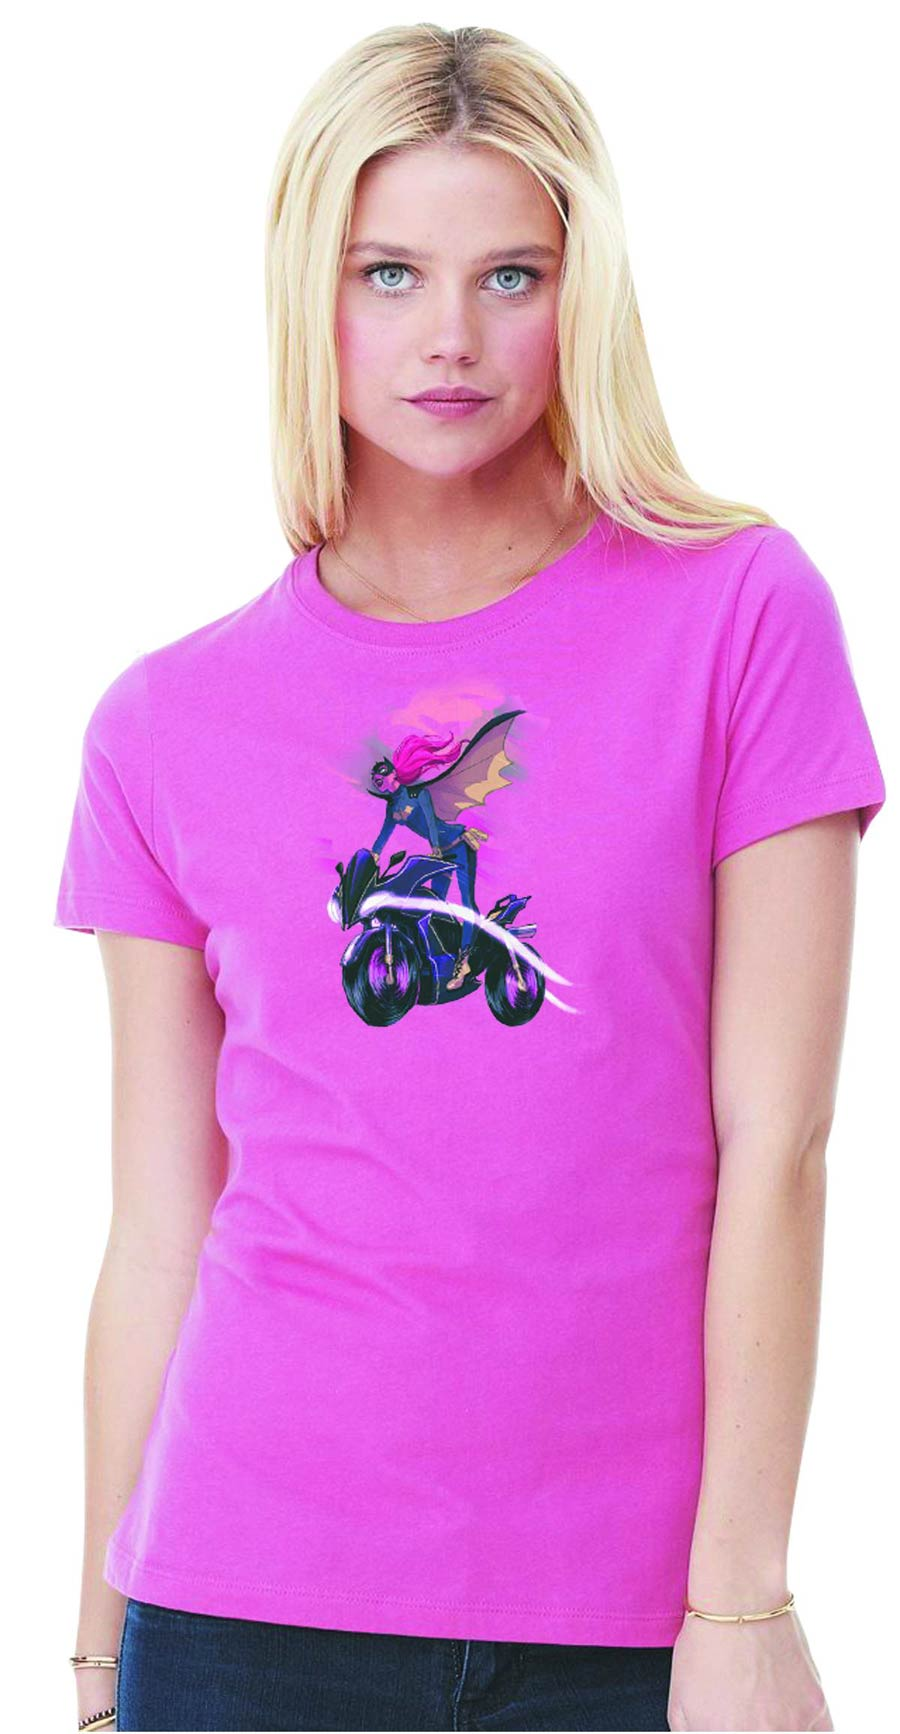 Batgirl Soar By Babs Tarr Womens T-Shirt Large